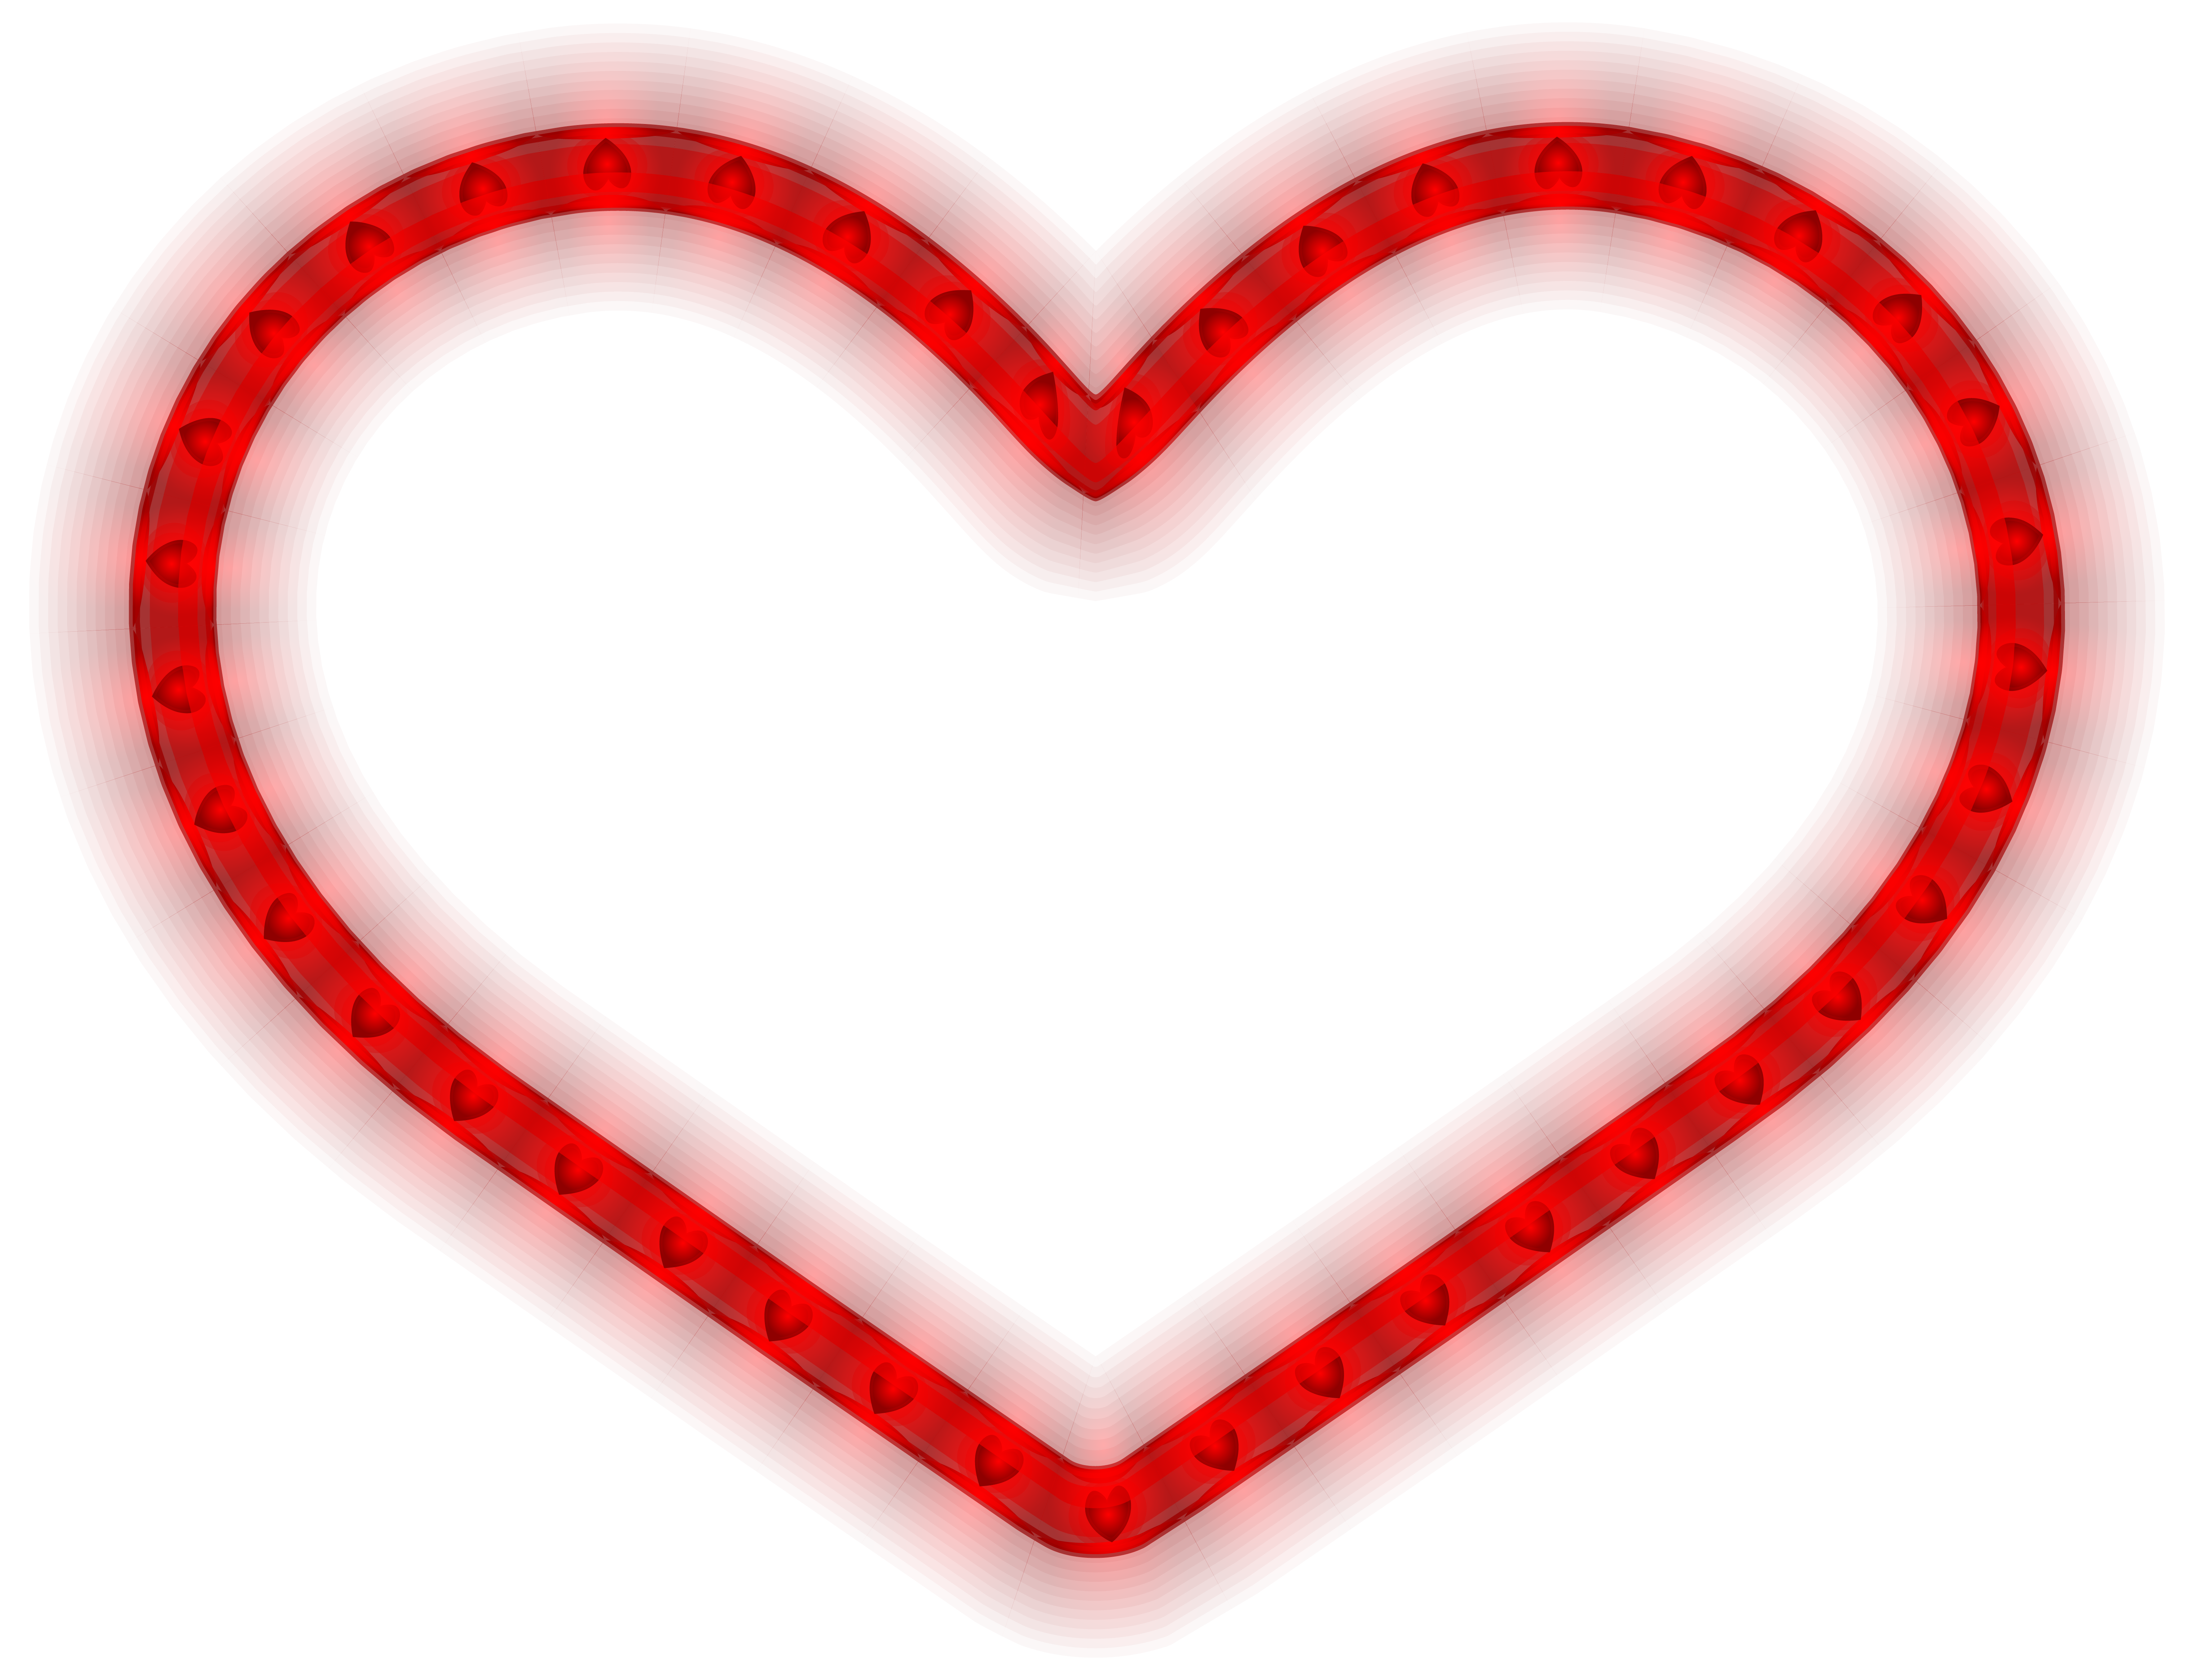 Hearts clipart butterfly. Glowing heart png image